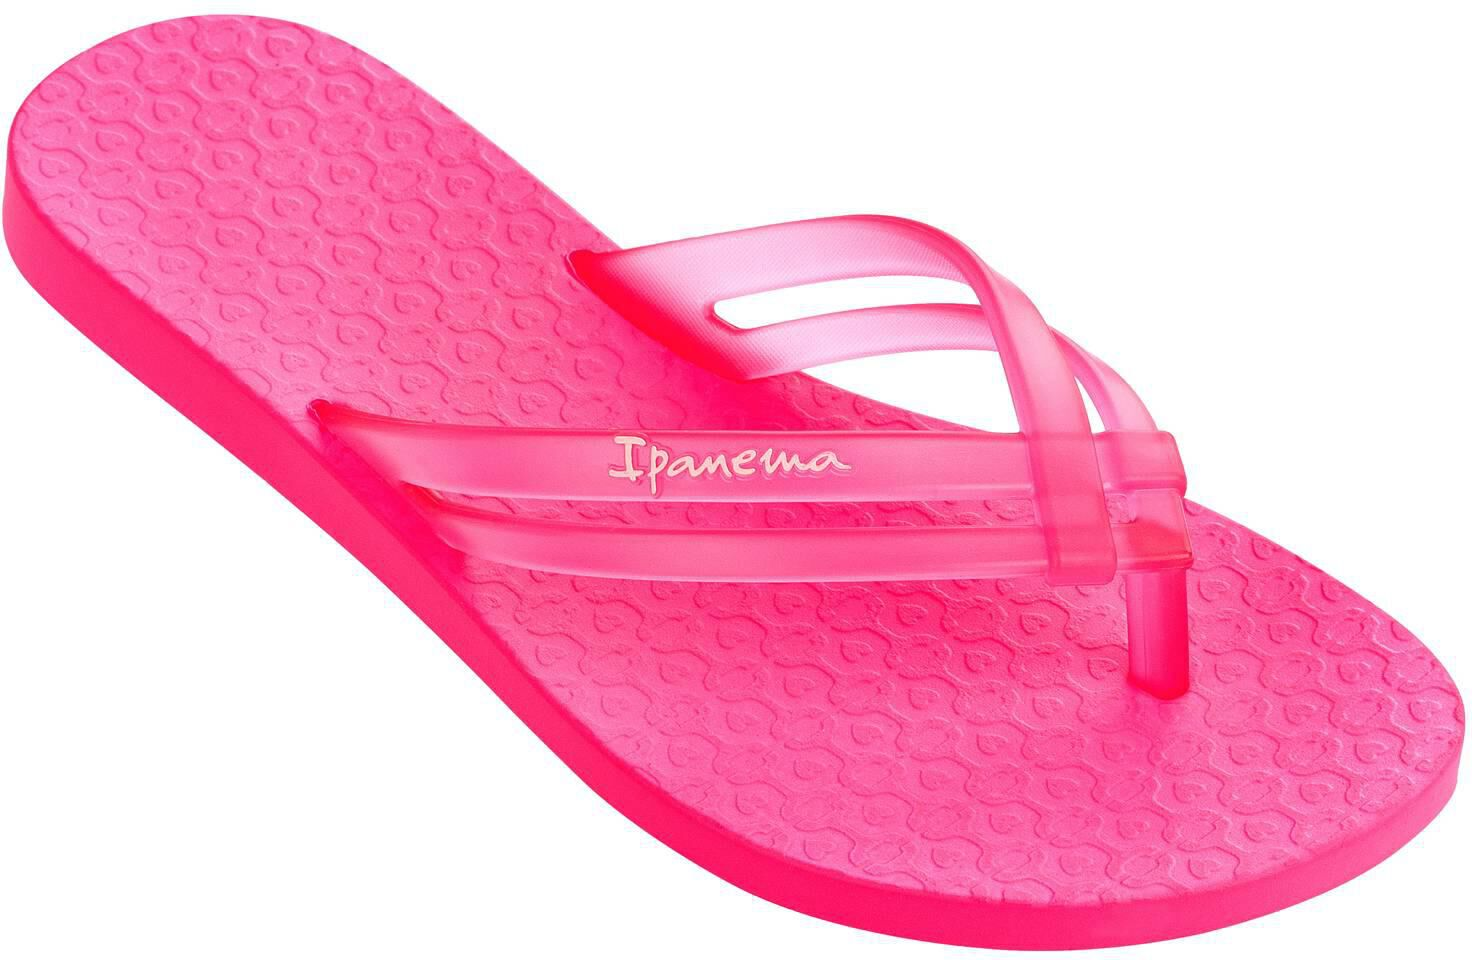 Firefly - Madère Pantoufles - Femmes - Chaussures - Rose - 39 6l1p5